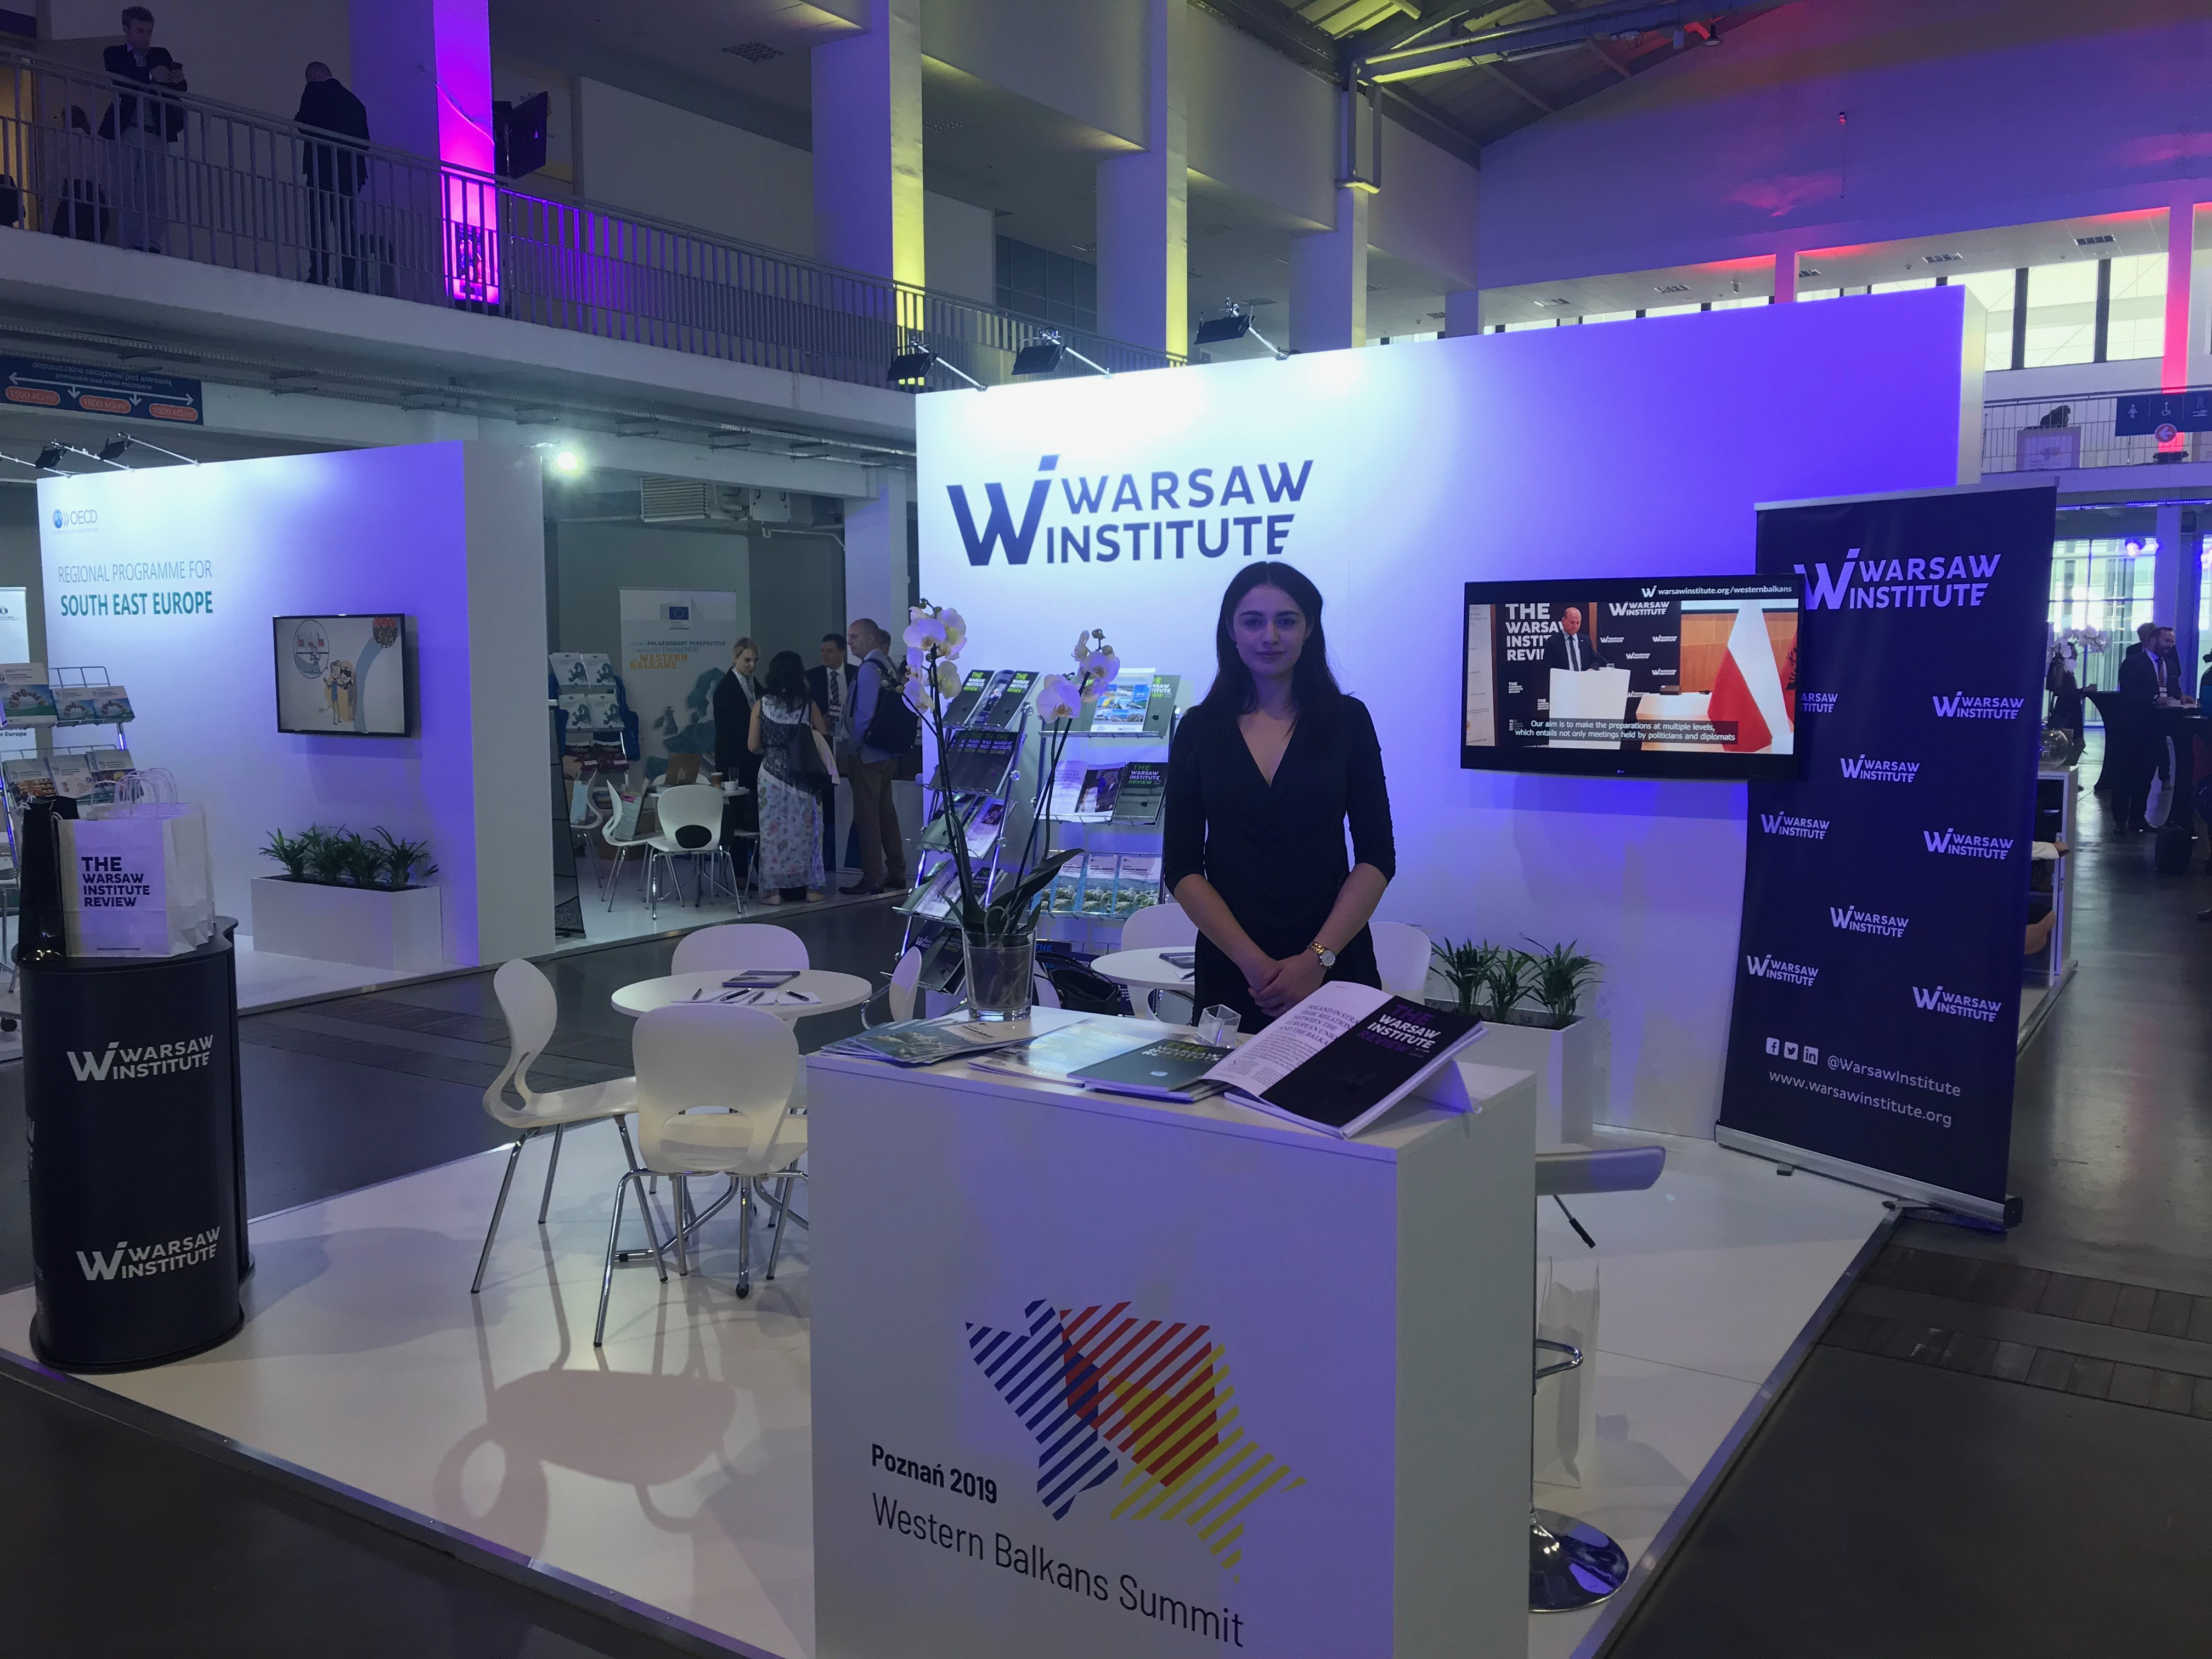 western balkans summit 2019 in Poznan warsaw institute stand